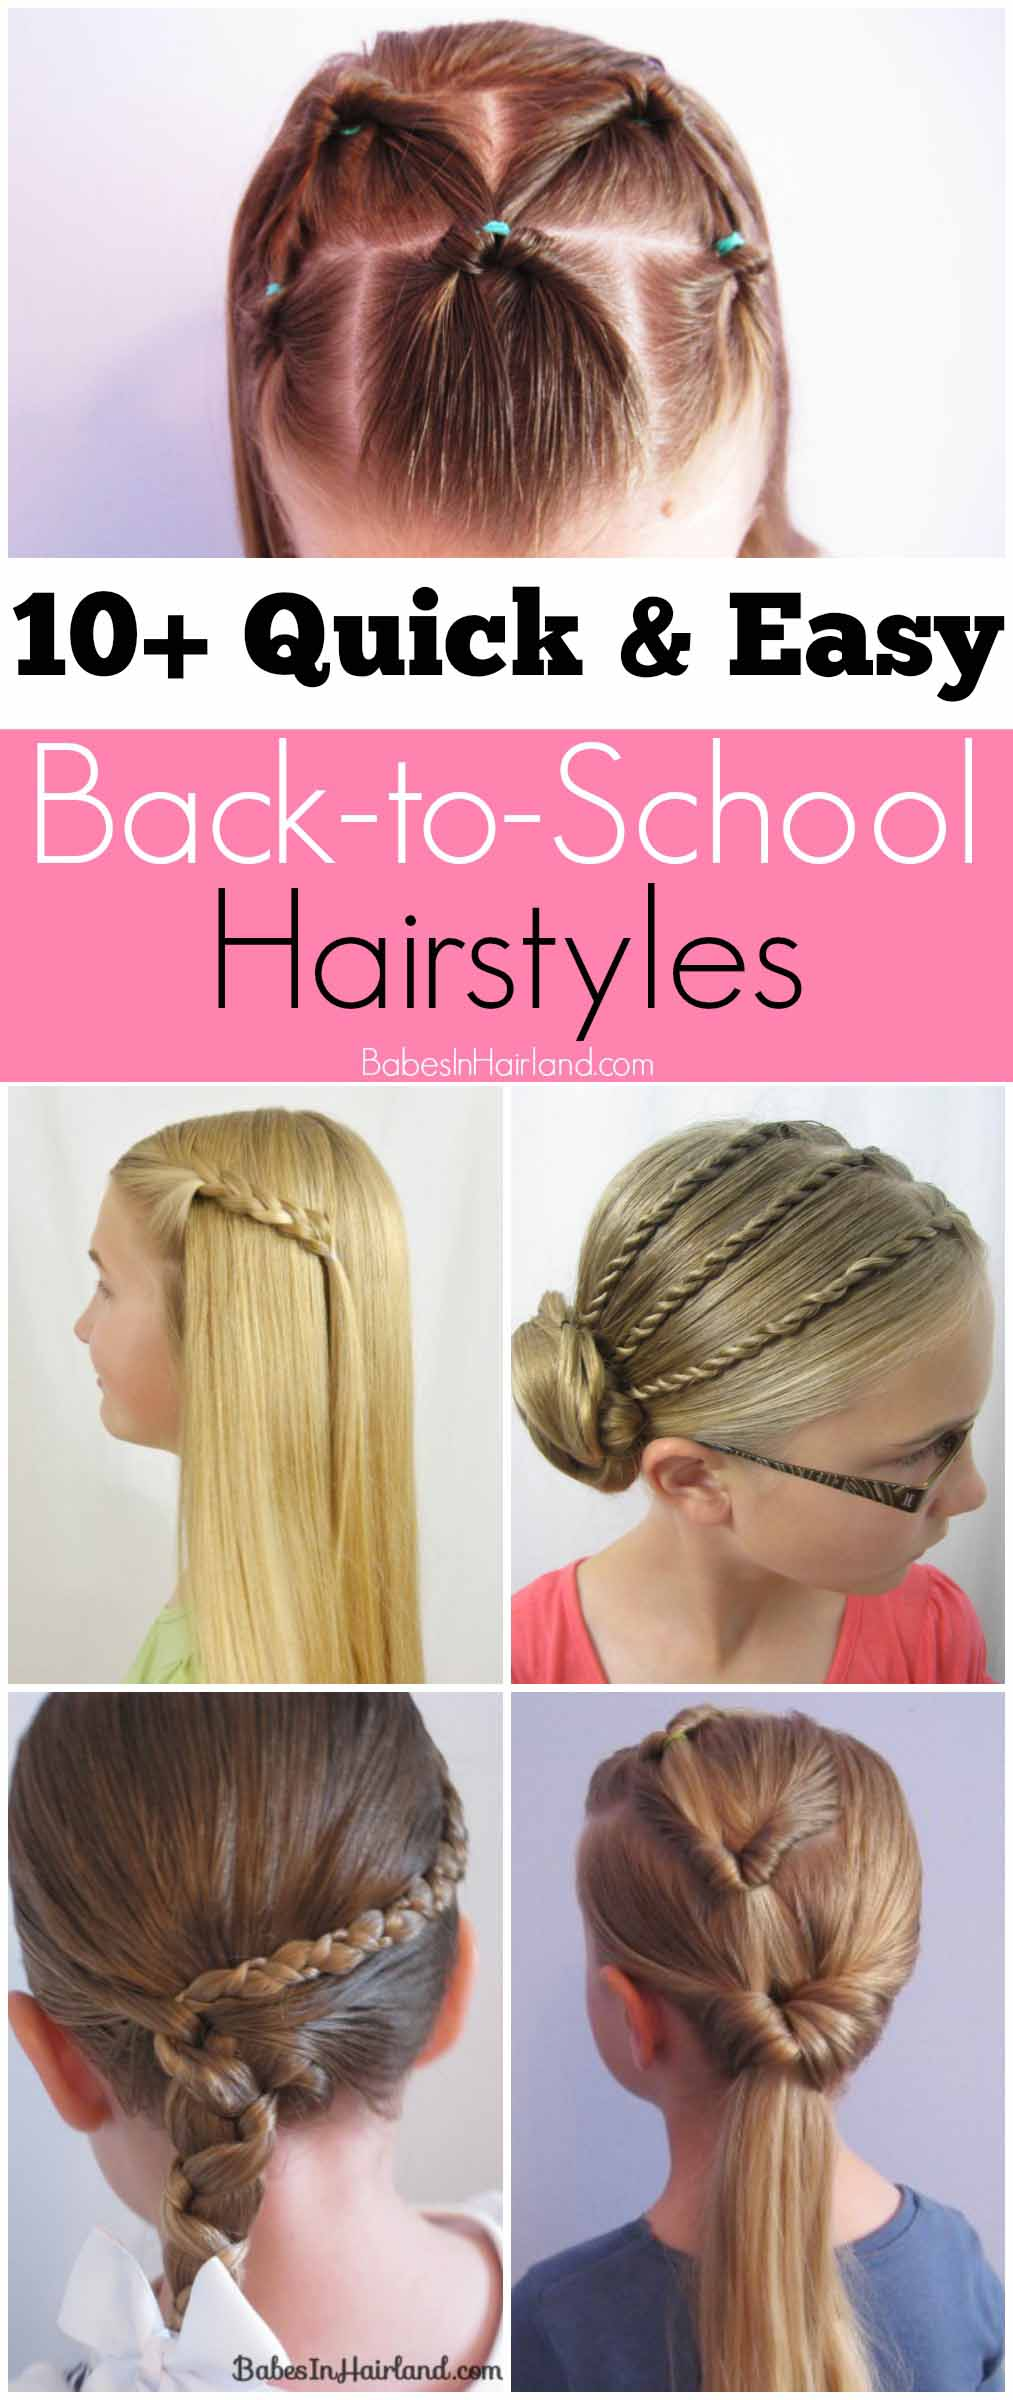 Peachy 10 Quick And Easy Back To School Hairstyles Babes In Hairland Hairstyles For Men Maxibearus